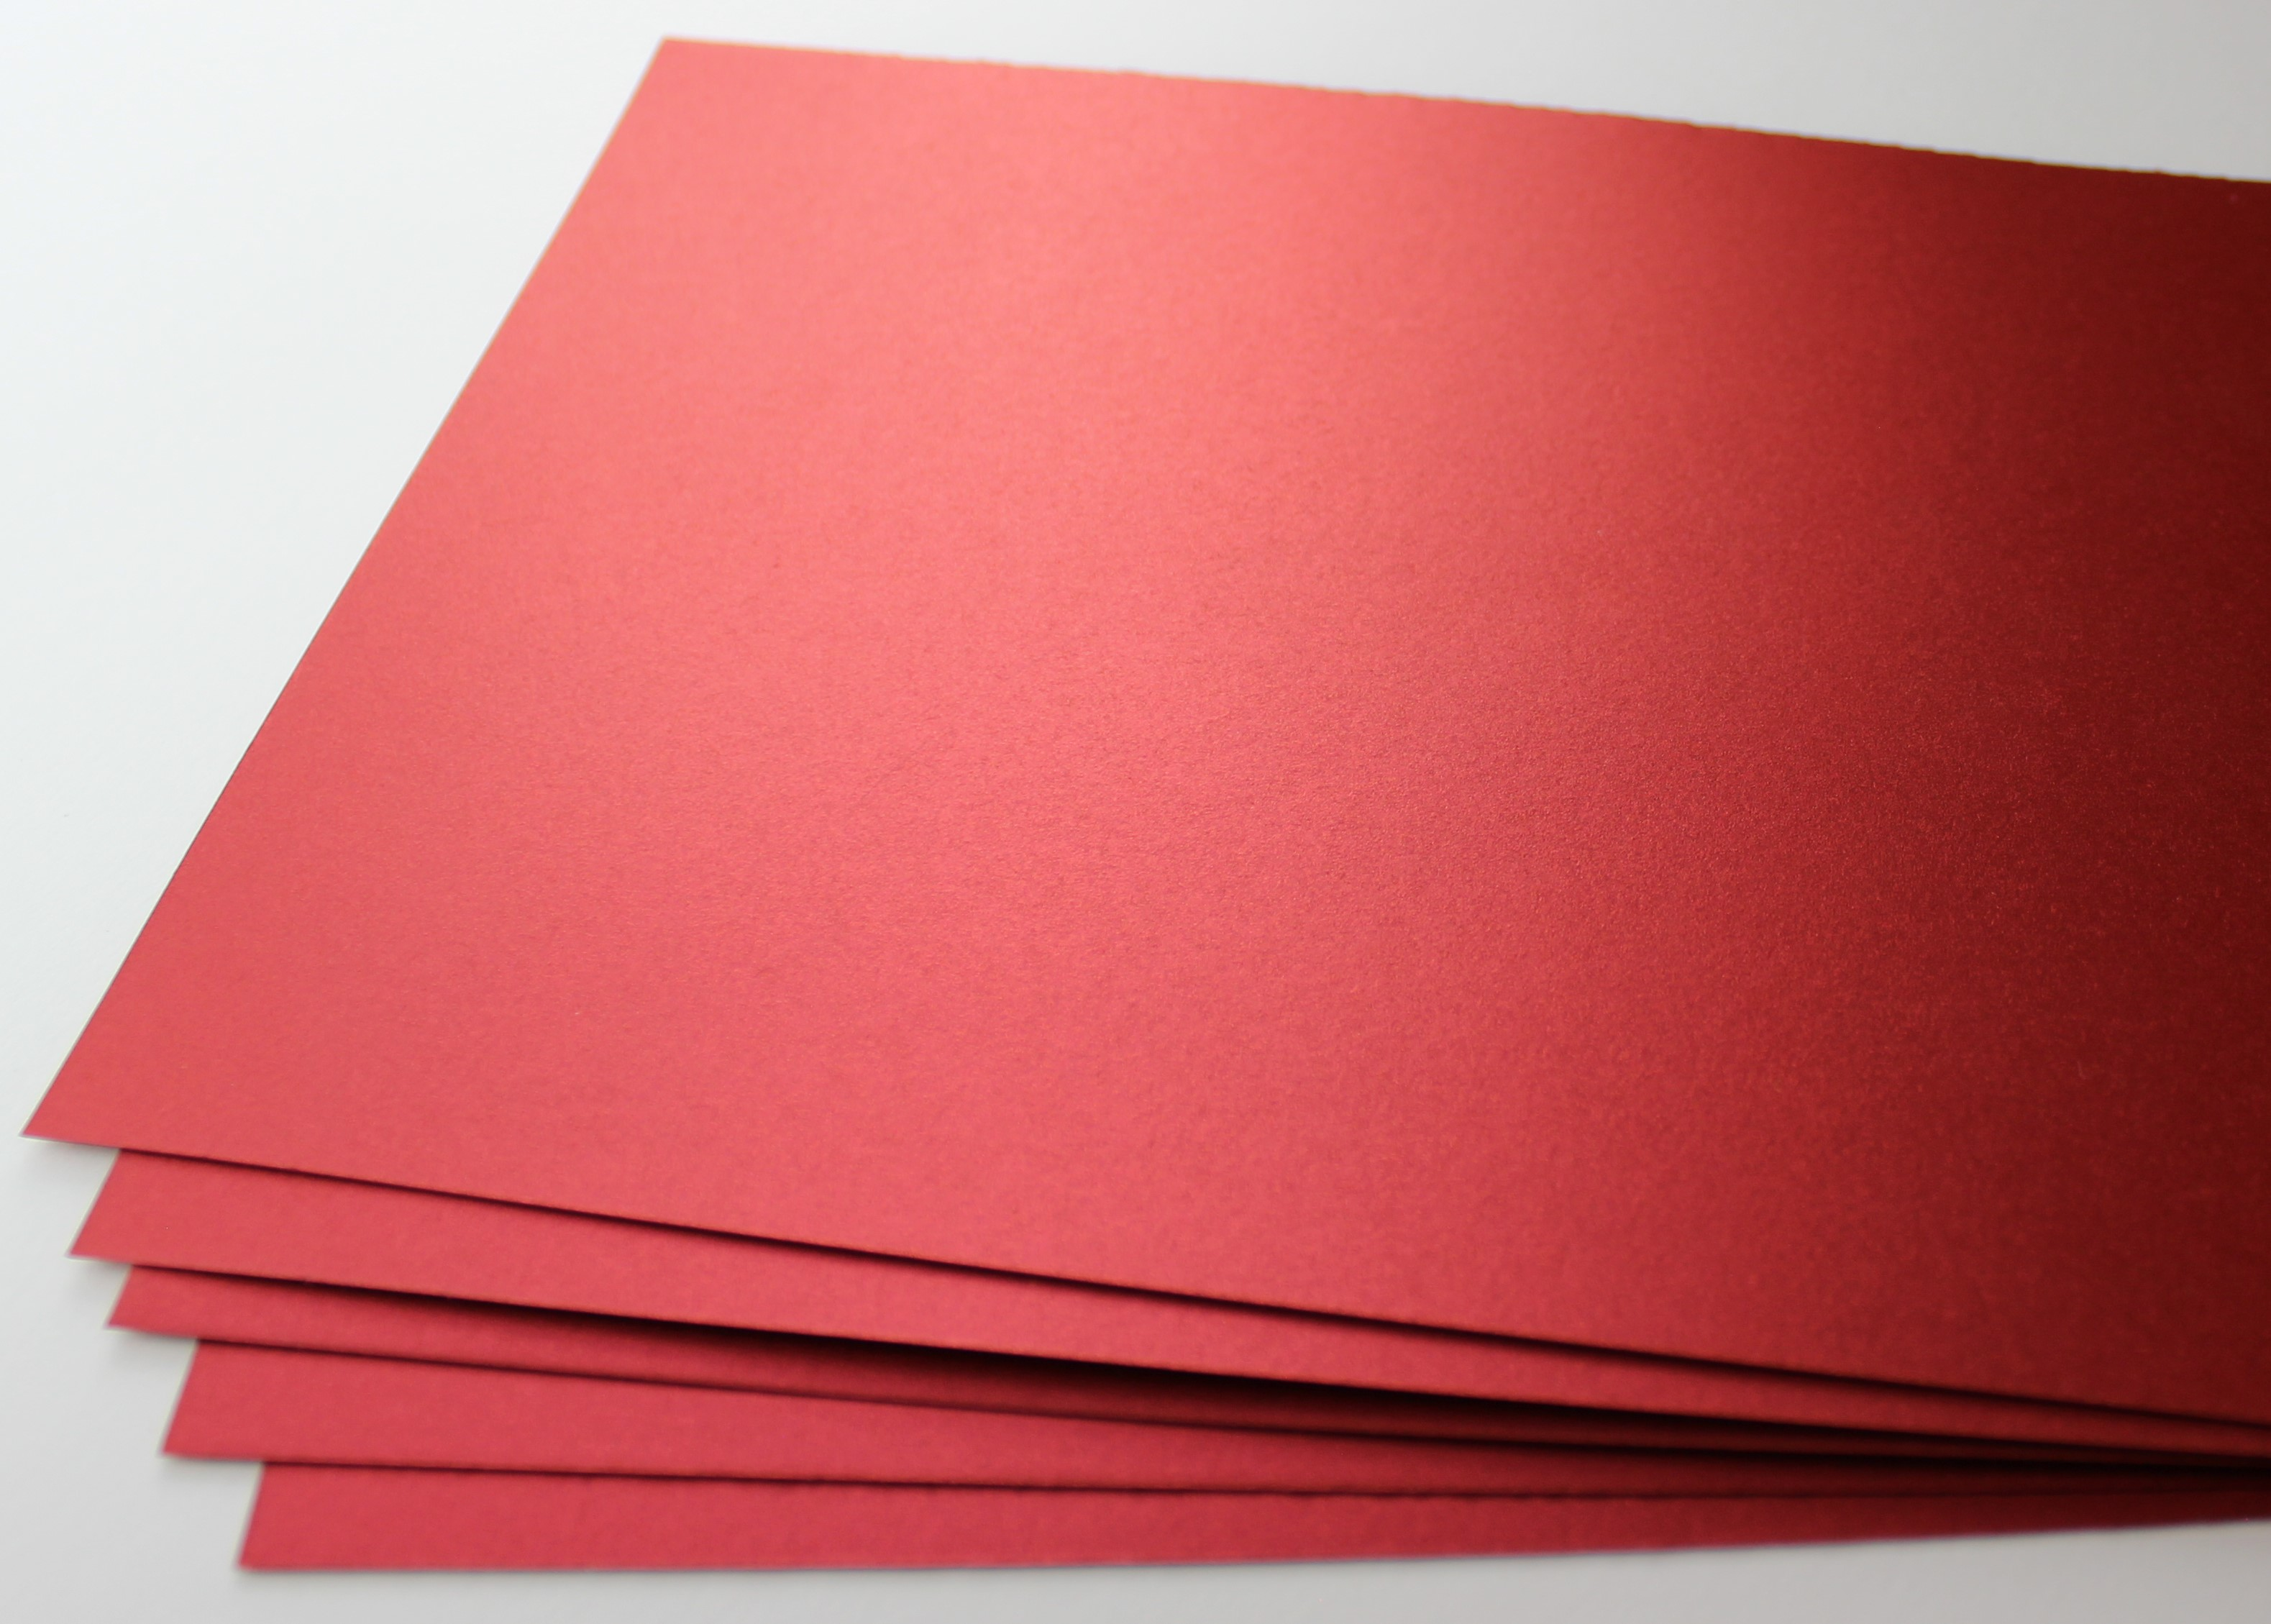 100 Blatt A2 (420x594 mm) Inapa Shyne Papier 120 g/qm red diamond